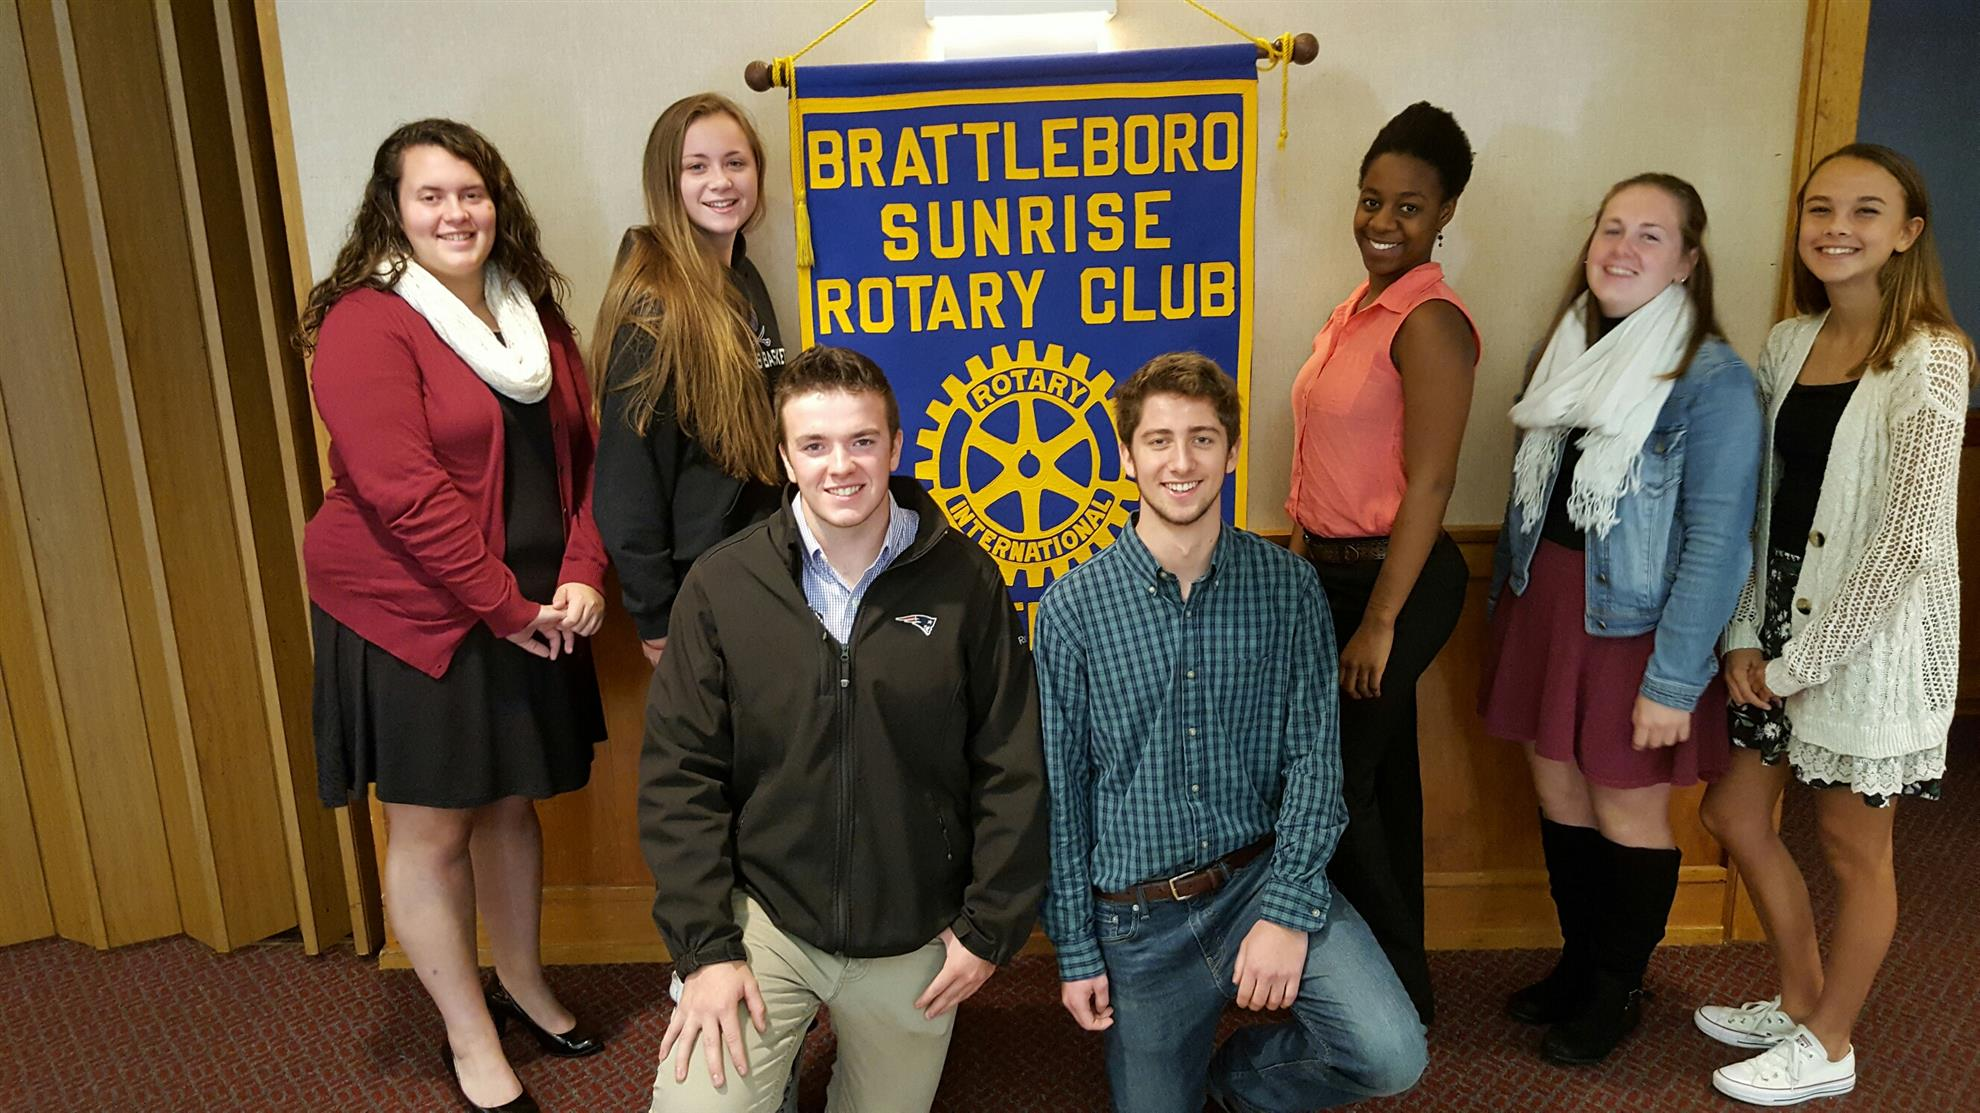 Stories | Rotary Club of Brattleboro Sunrise